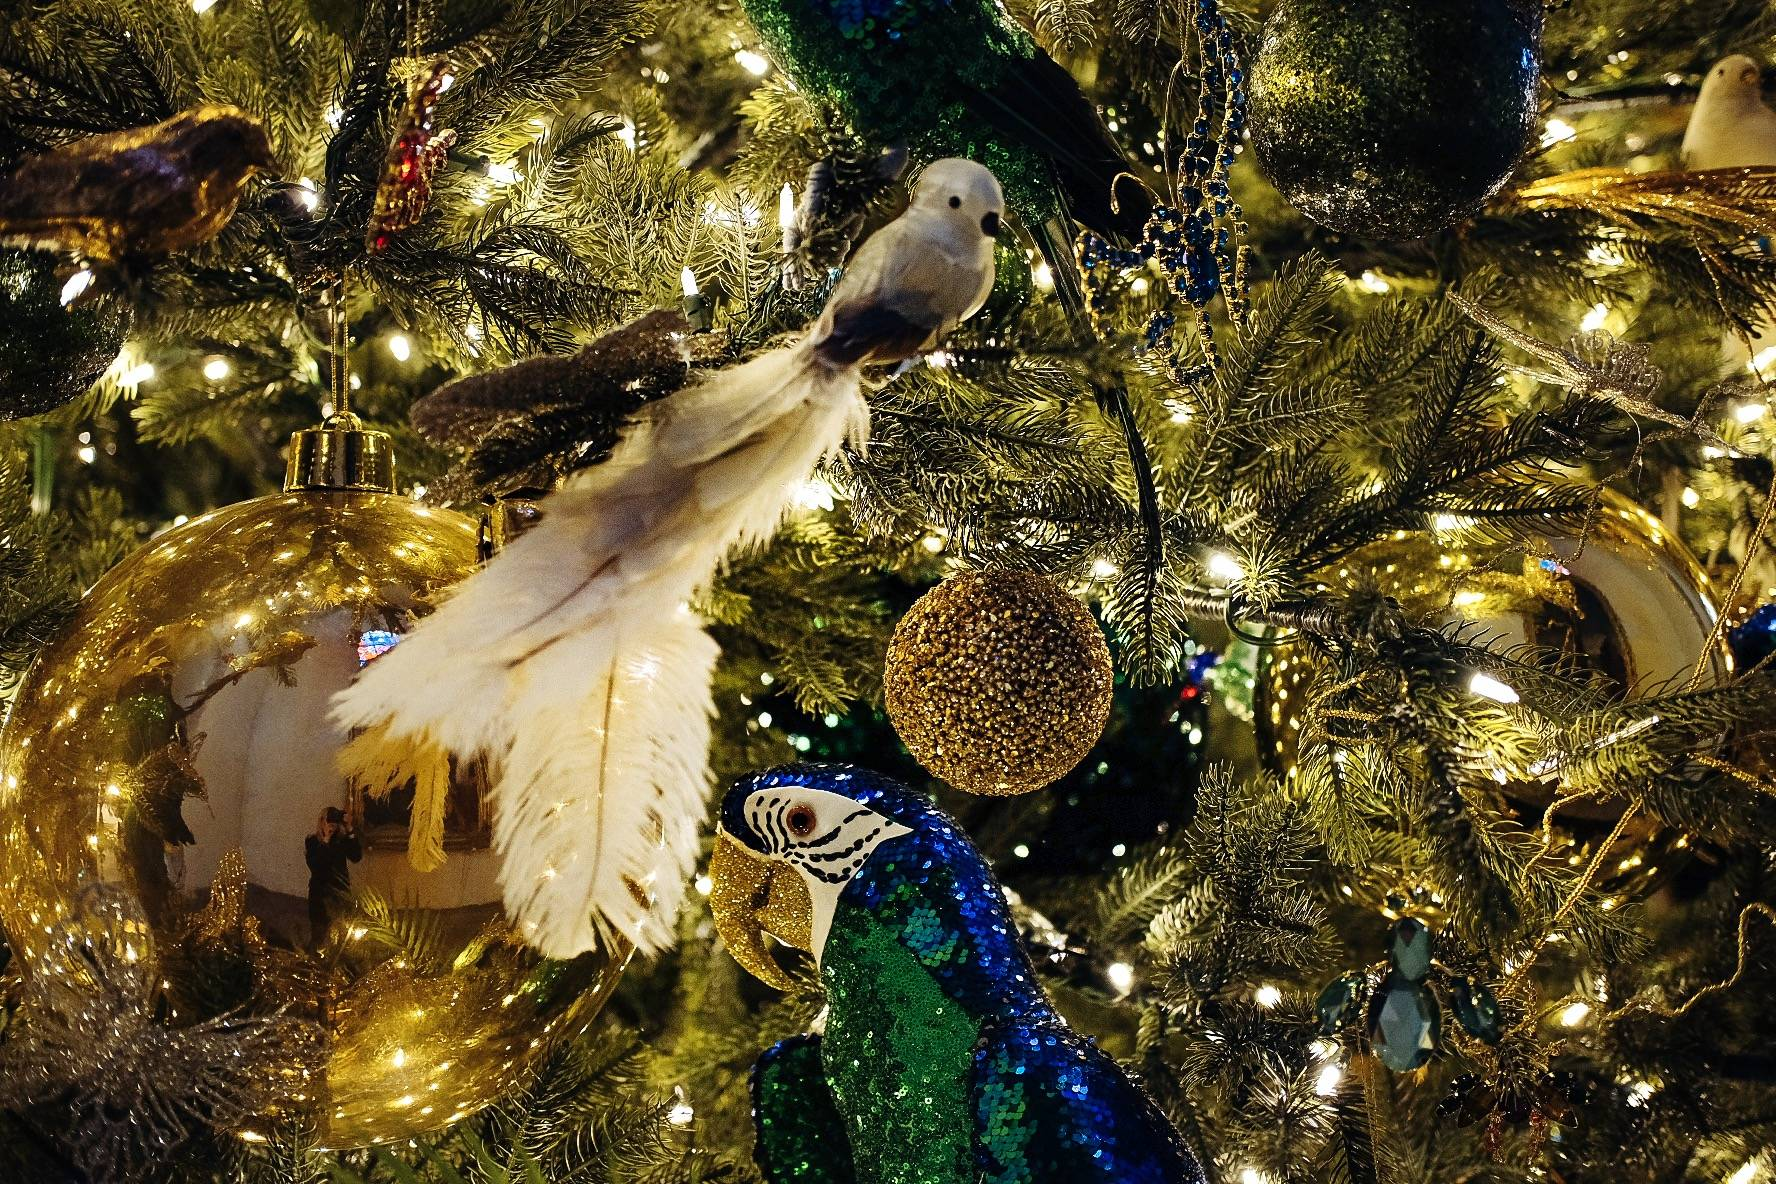 Sparkling birds and other Paradise-themed Christmas decorations by Shishi in the St Nicholas (Niguliste) Church in Tallinn, Estonia  Photo: Kadi-Liis Koppel